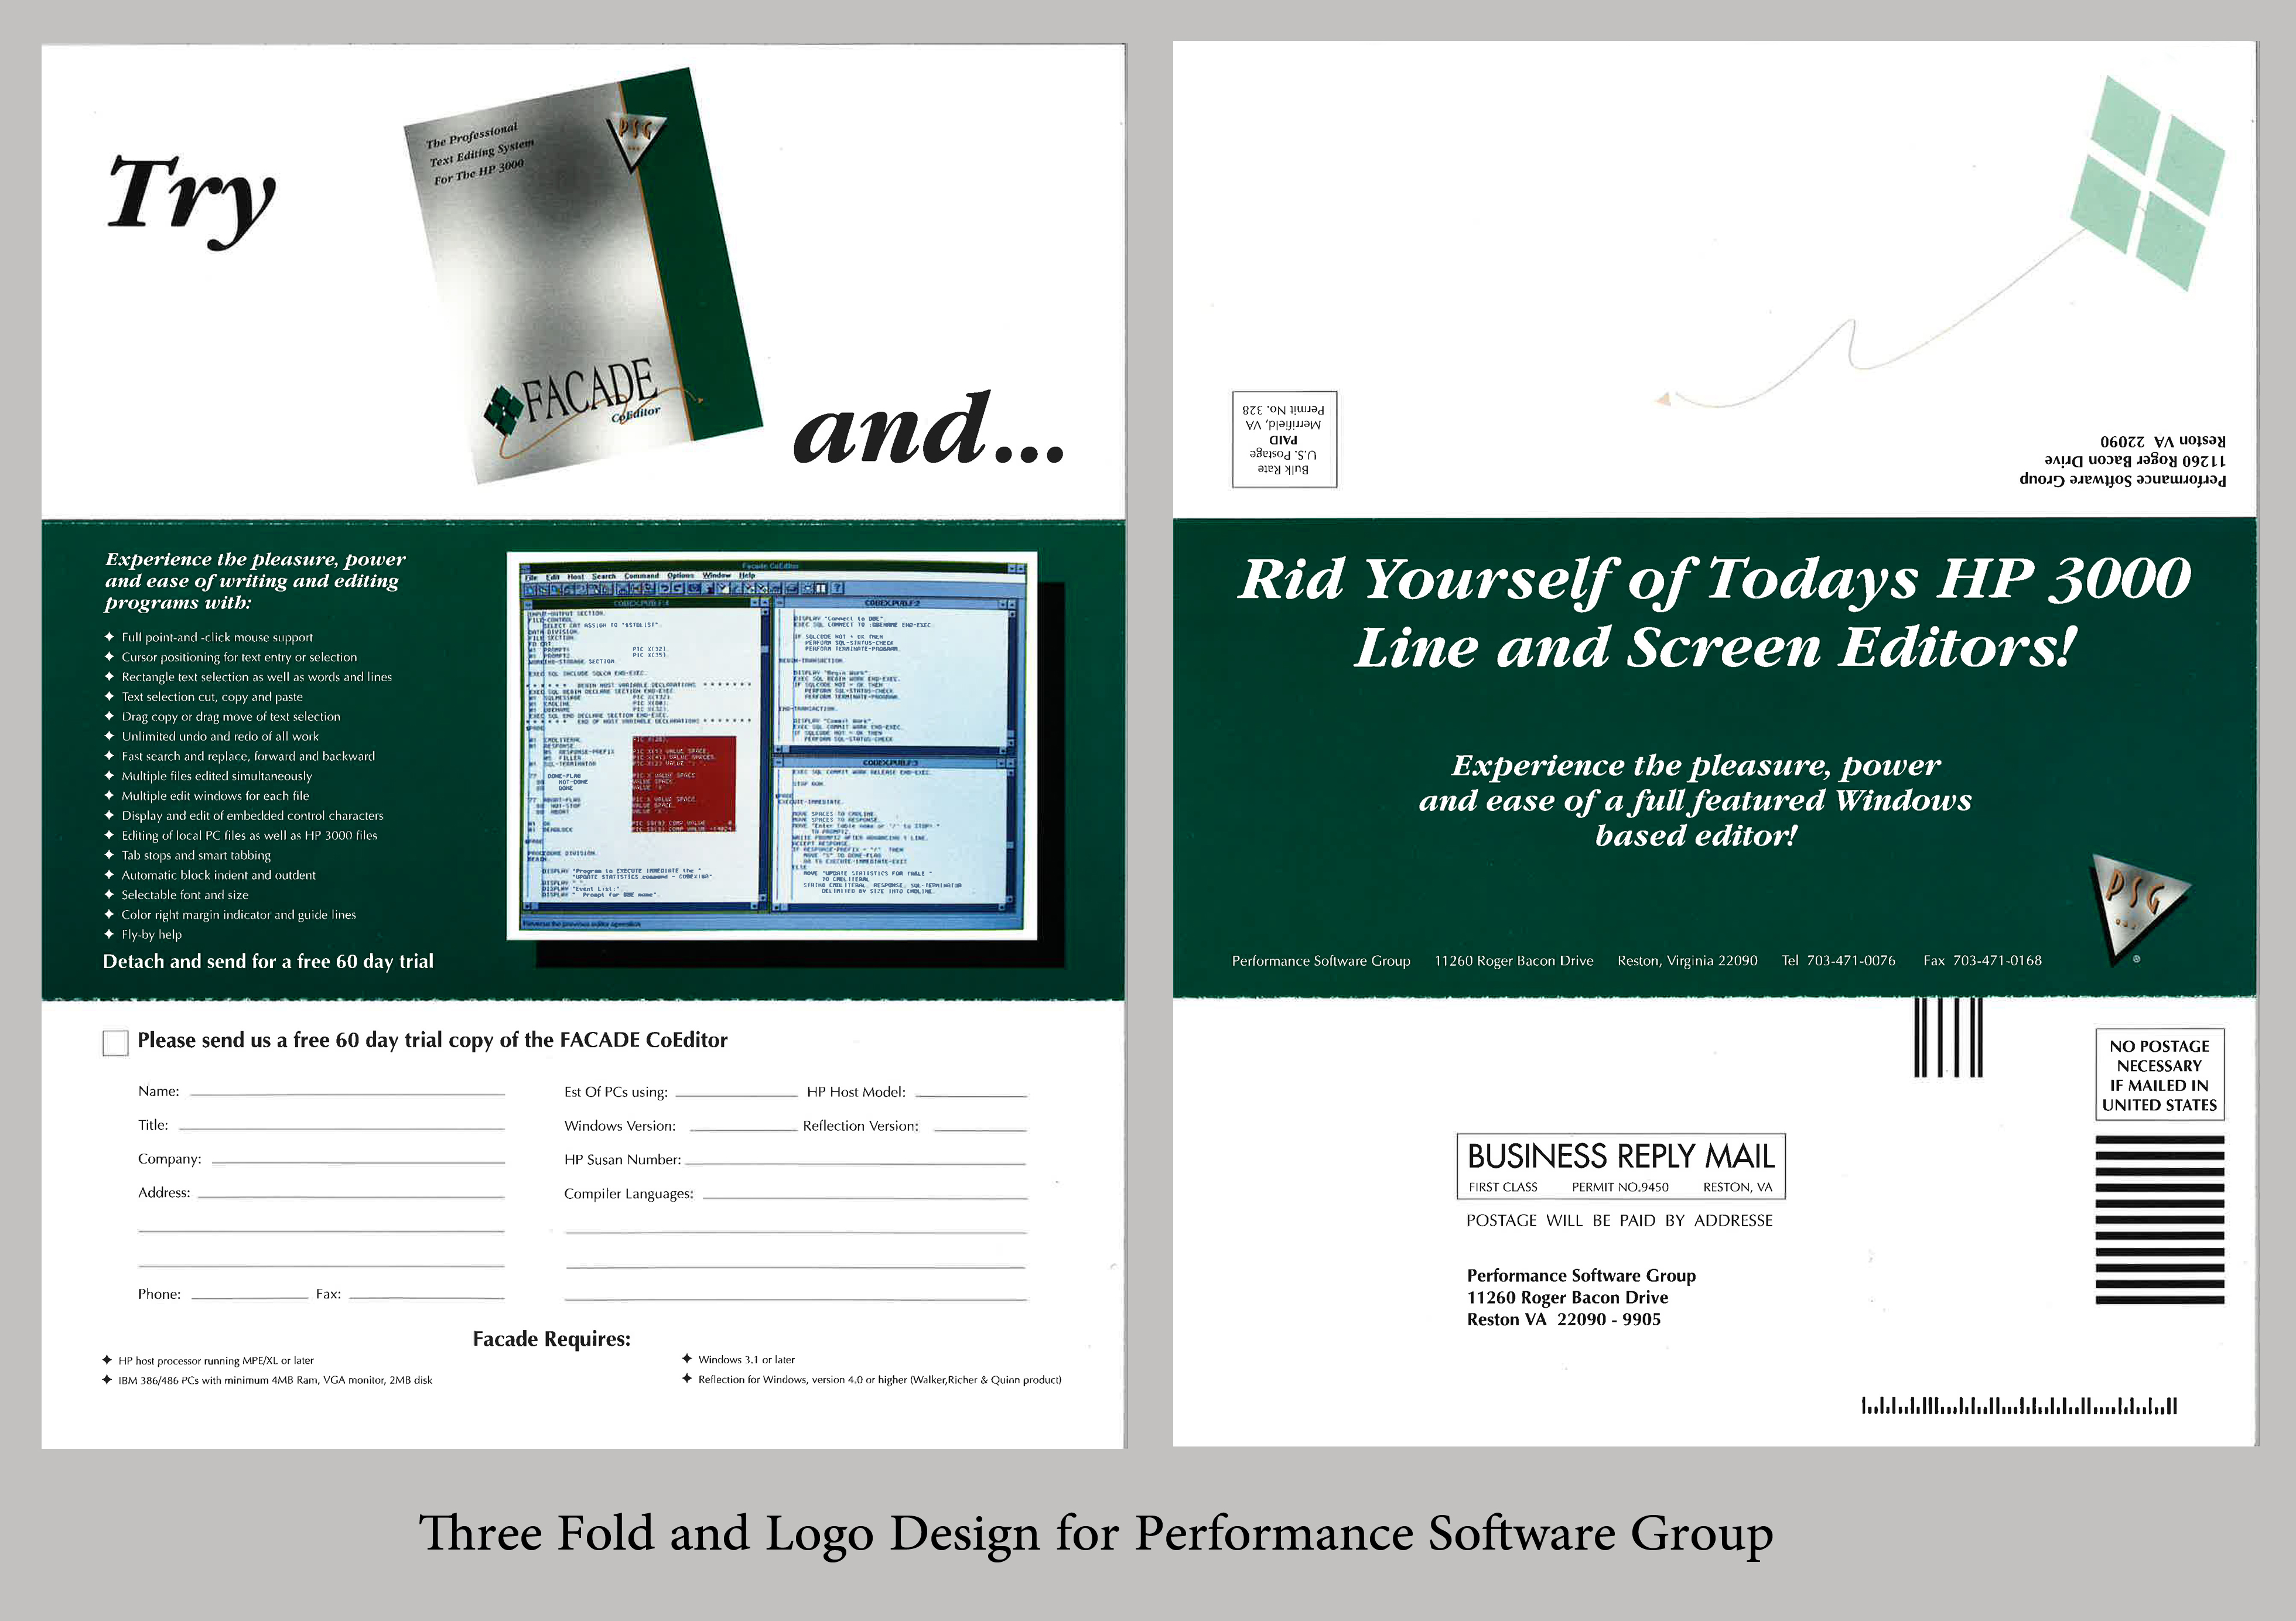 Tri Fold for Mailer for Performance Software Group